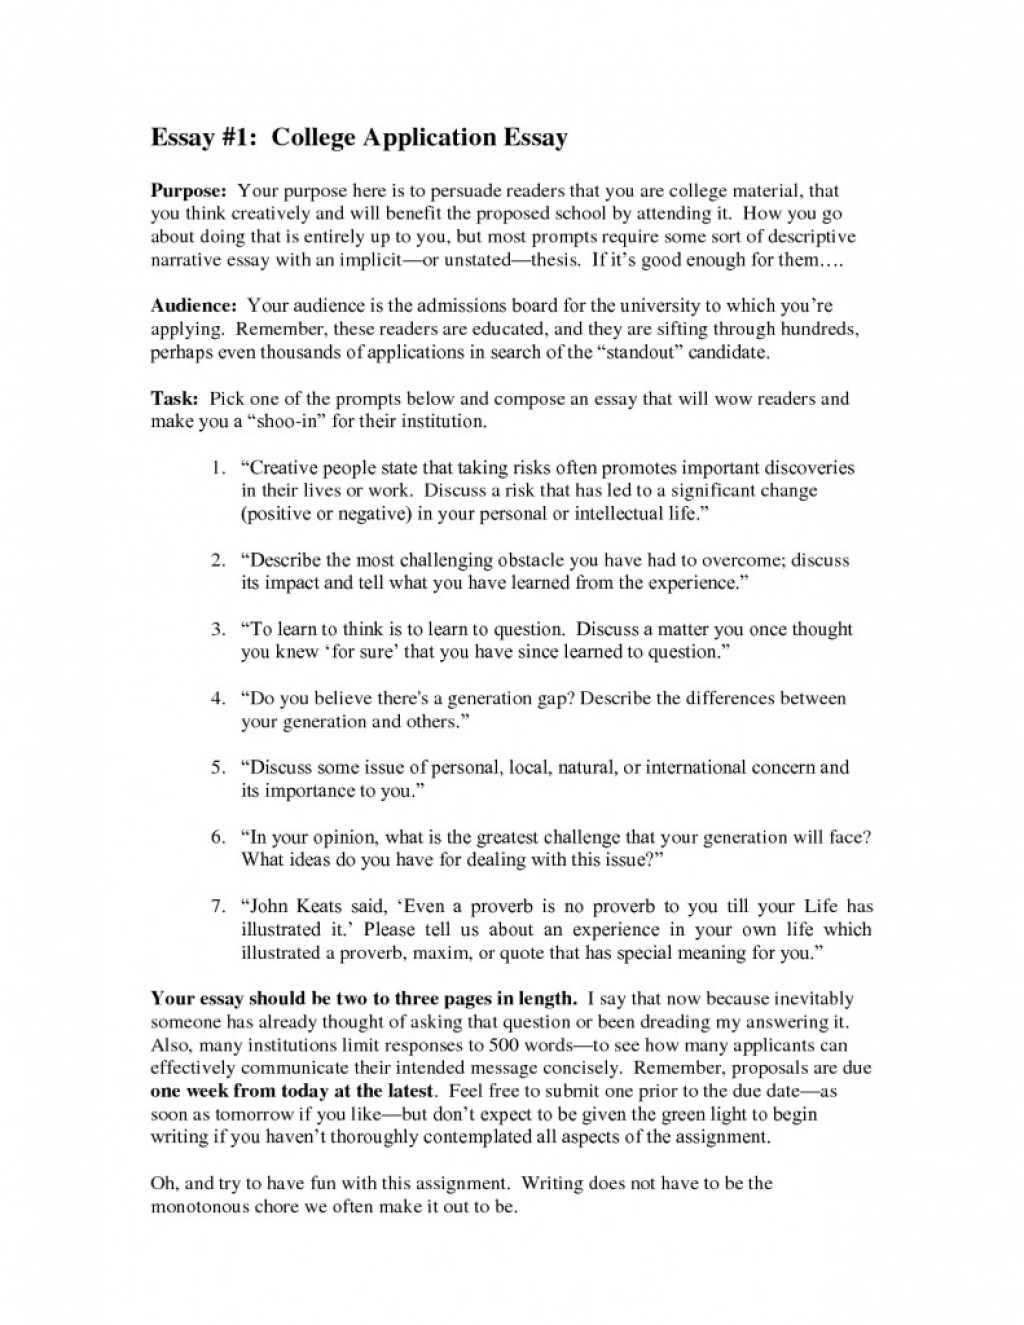 011 Essay Example Writing College Application Rare A Topics To Write On Tips For About Yourself Large